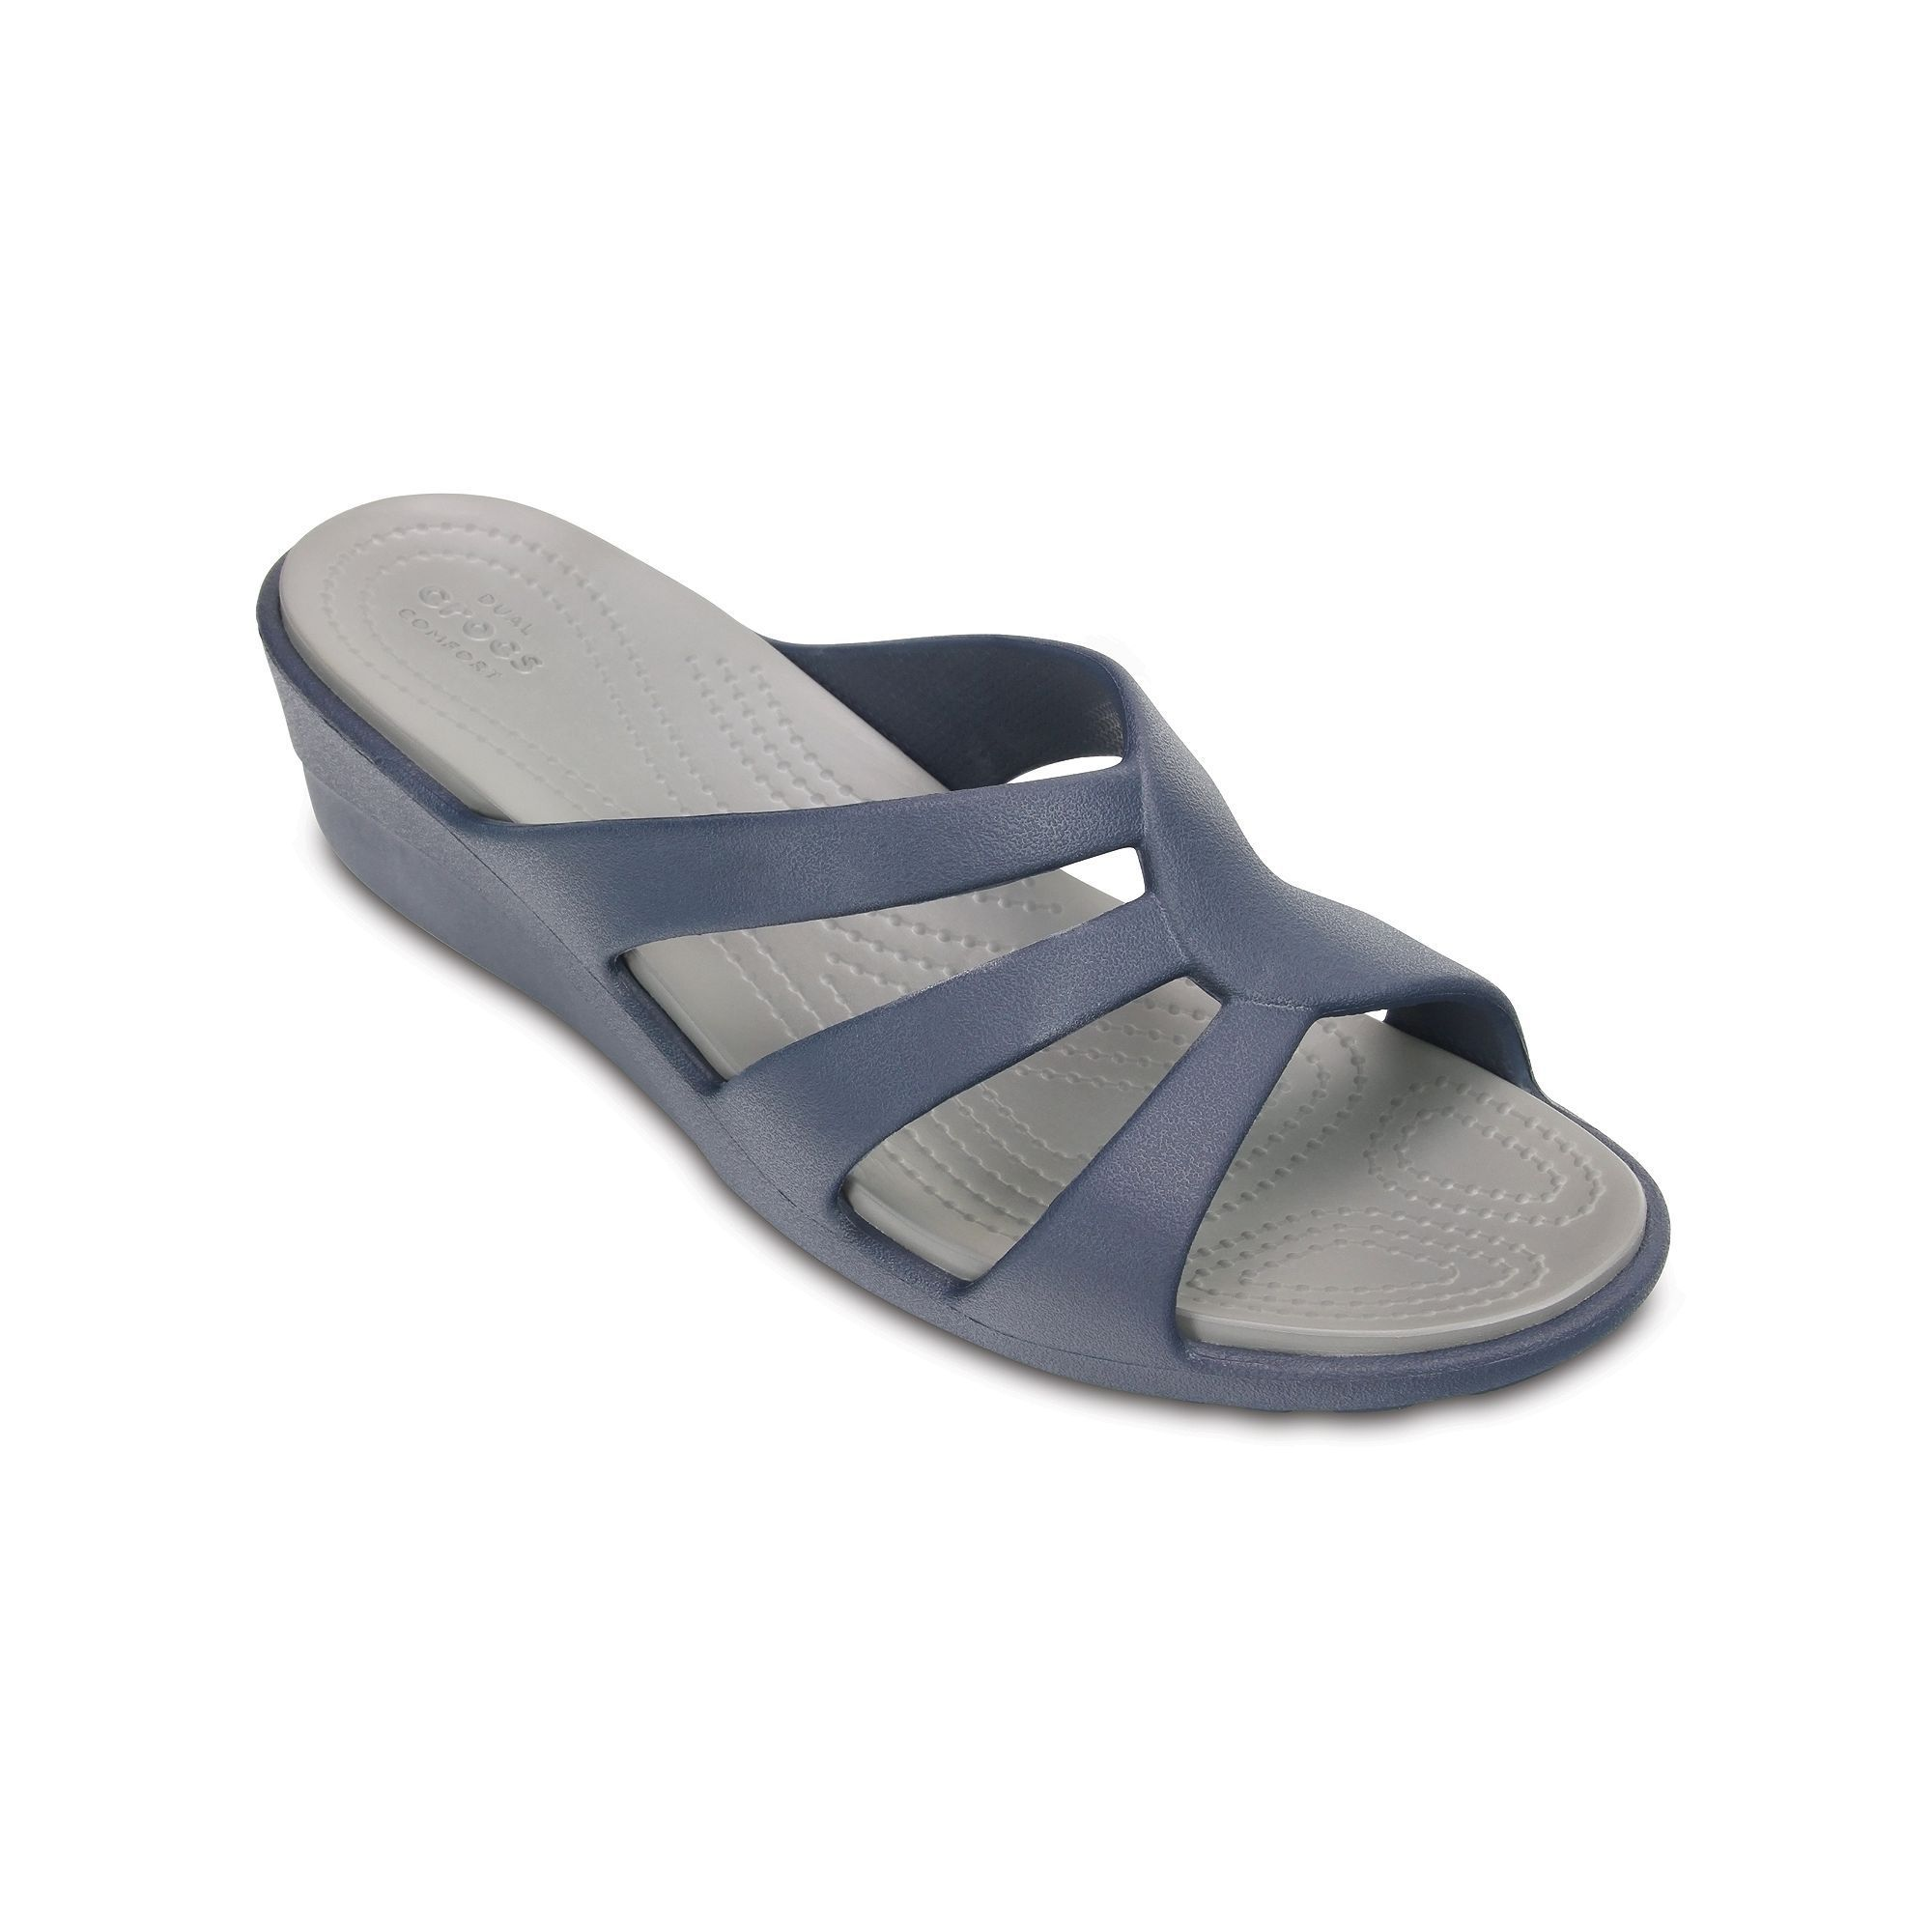 fe8a5299bad Crocs Sanrah Women s Strappy Wedge Sandals in 2019